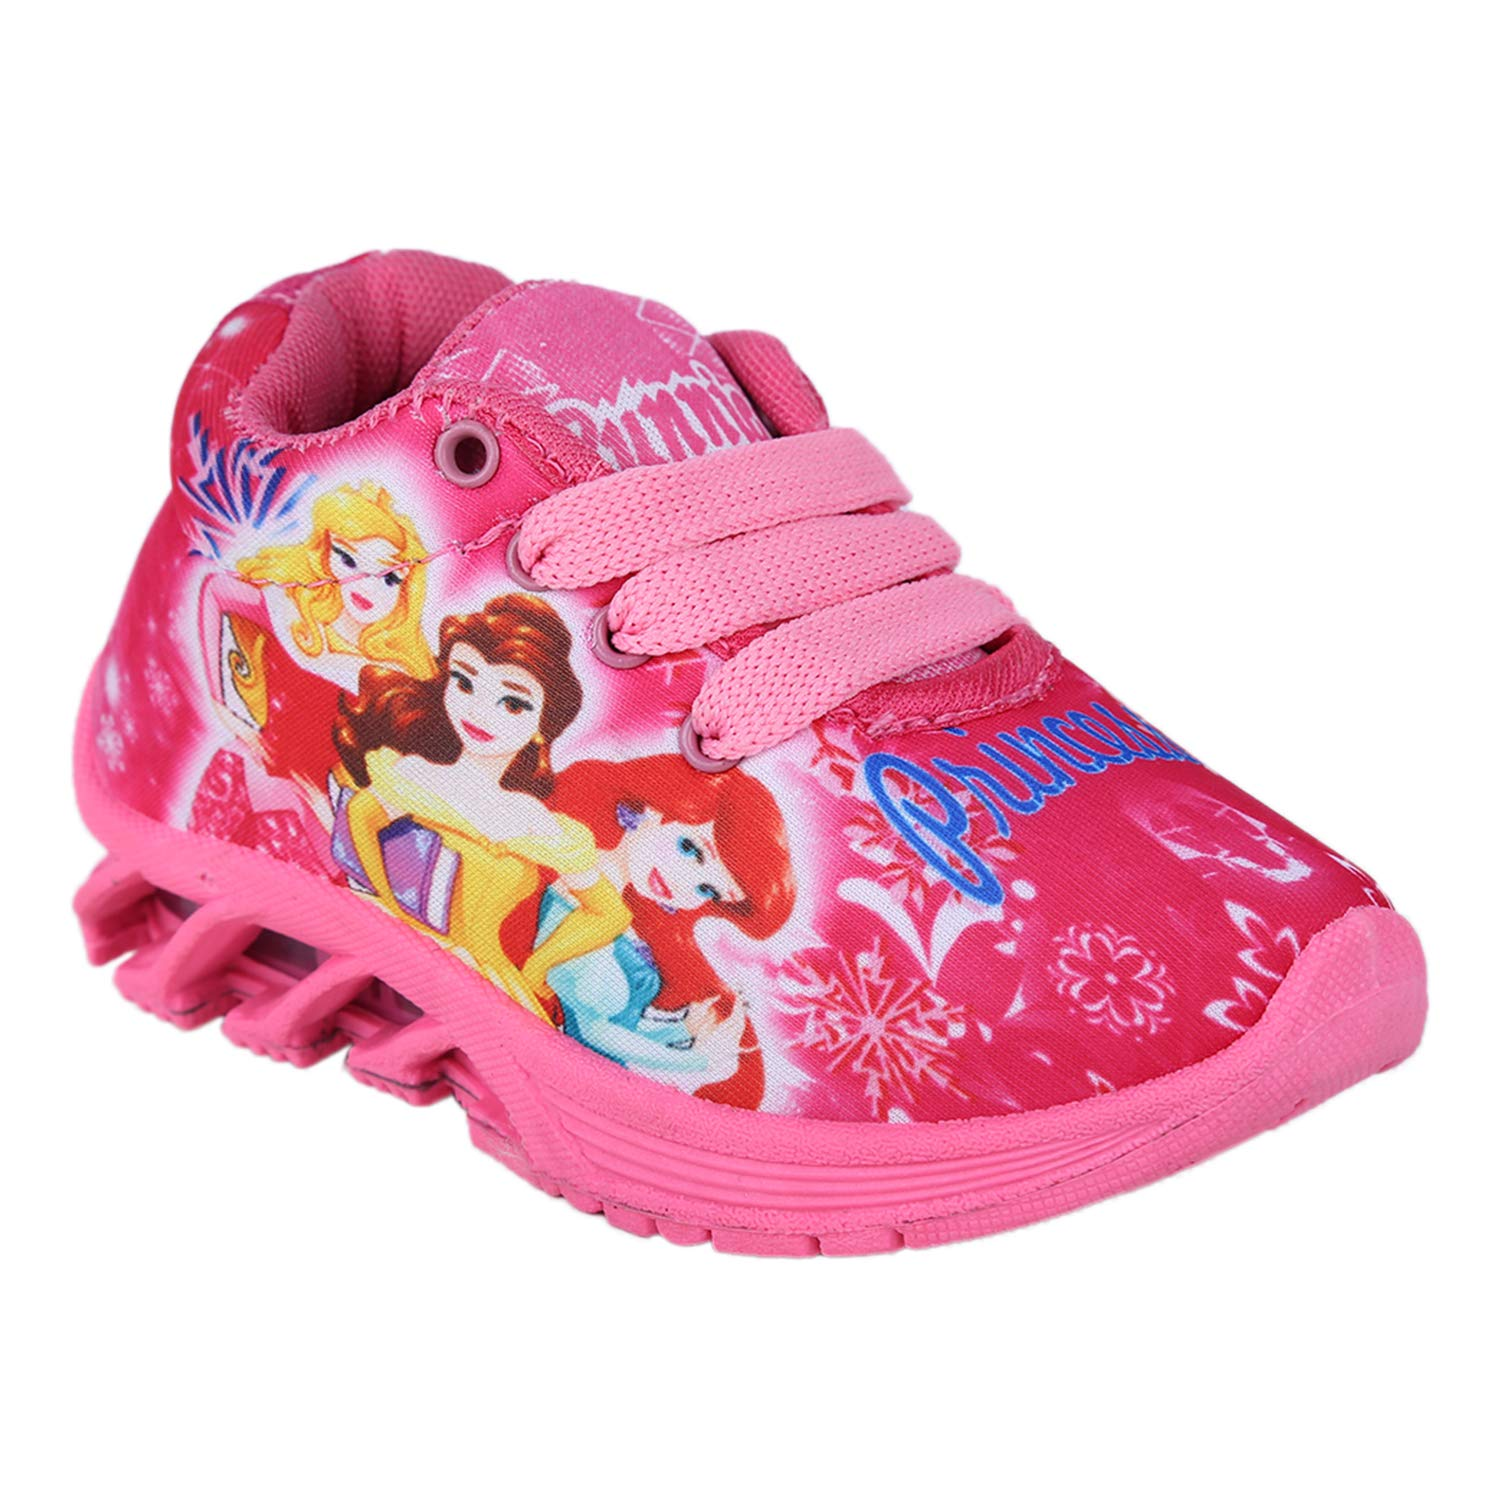 Buy Bunnies Baby Girls' Modern Shoes at